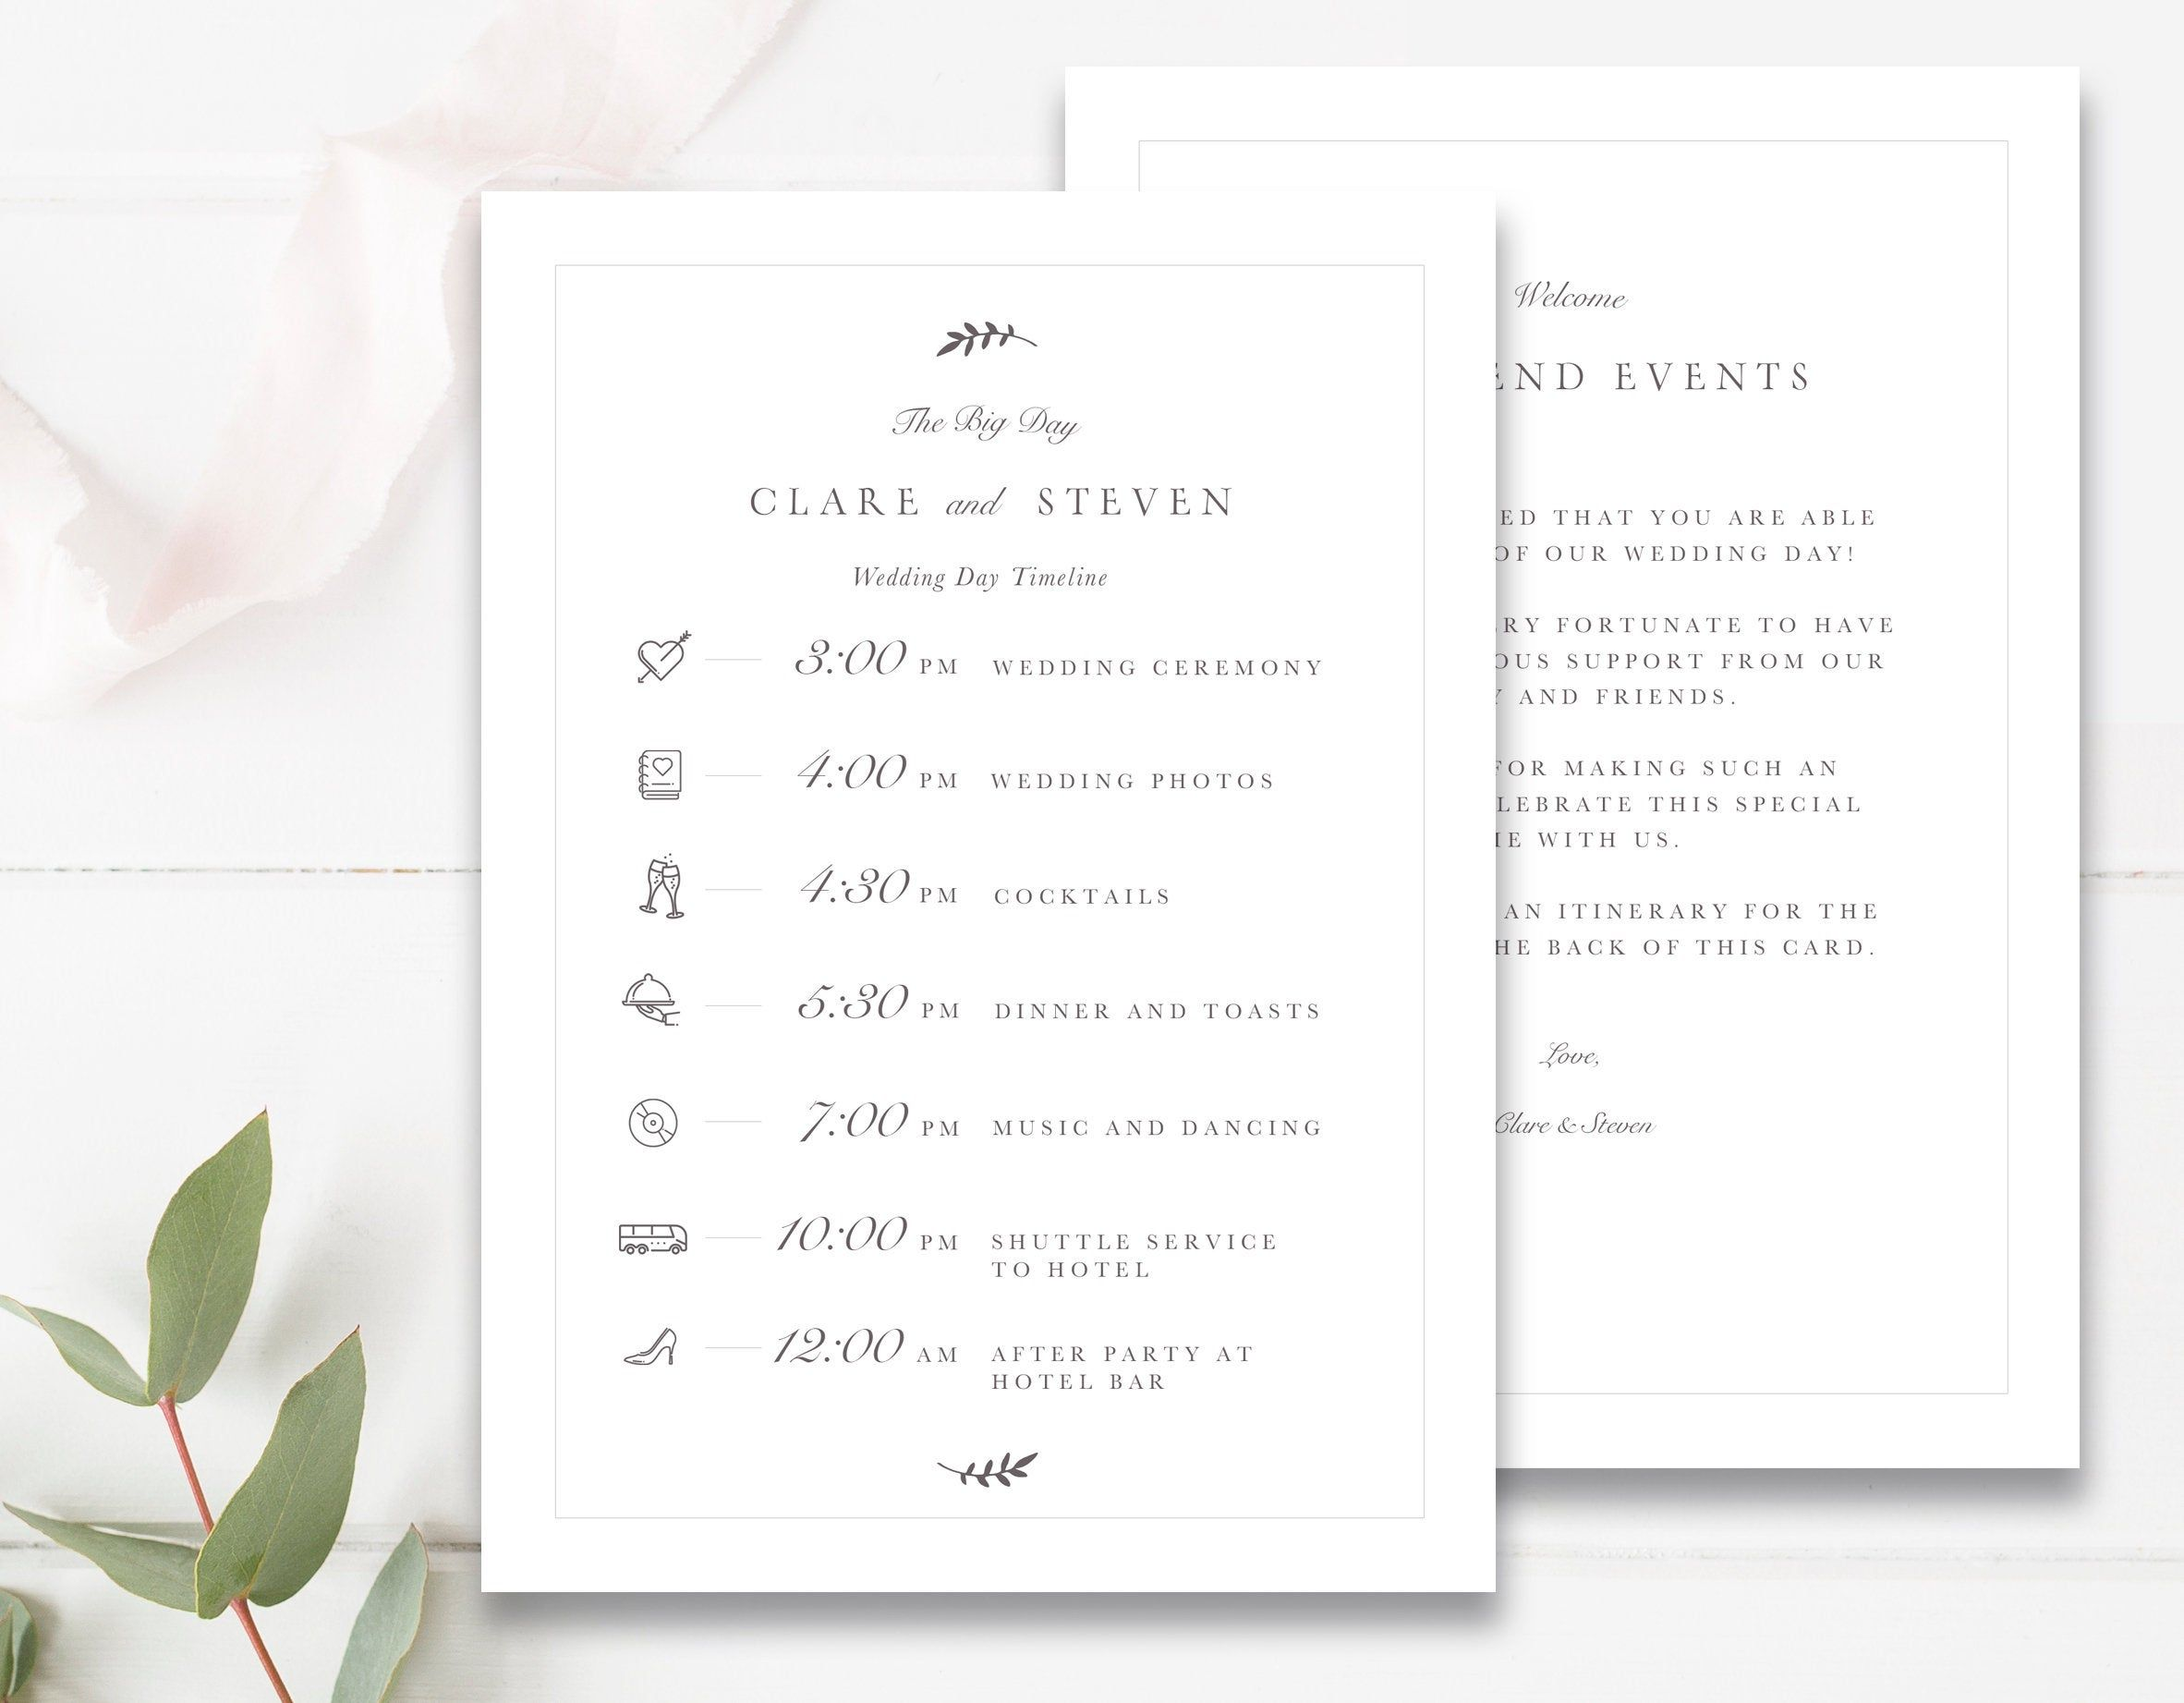 Wedding Timeline Editable Timeline With Icons Printable Etsy Wedding Timeline Wedding Schedule Wedding Timeline Template